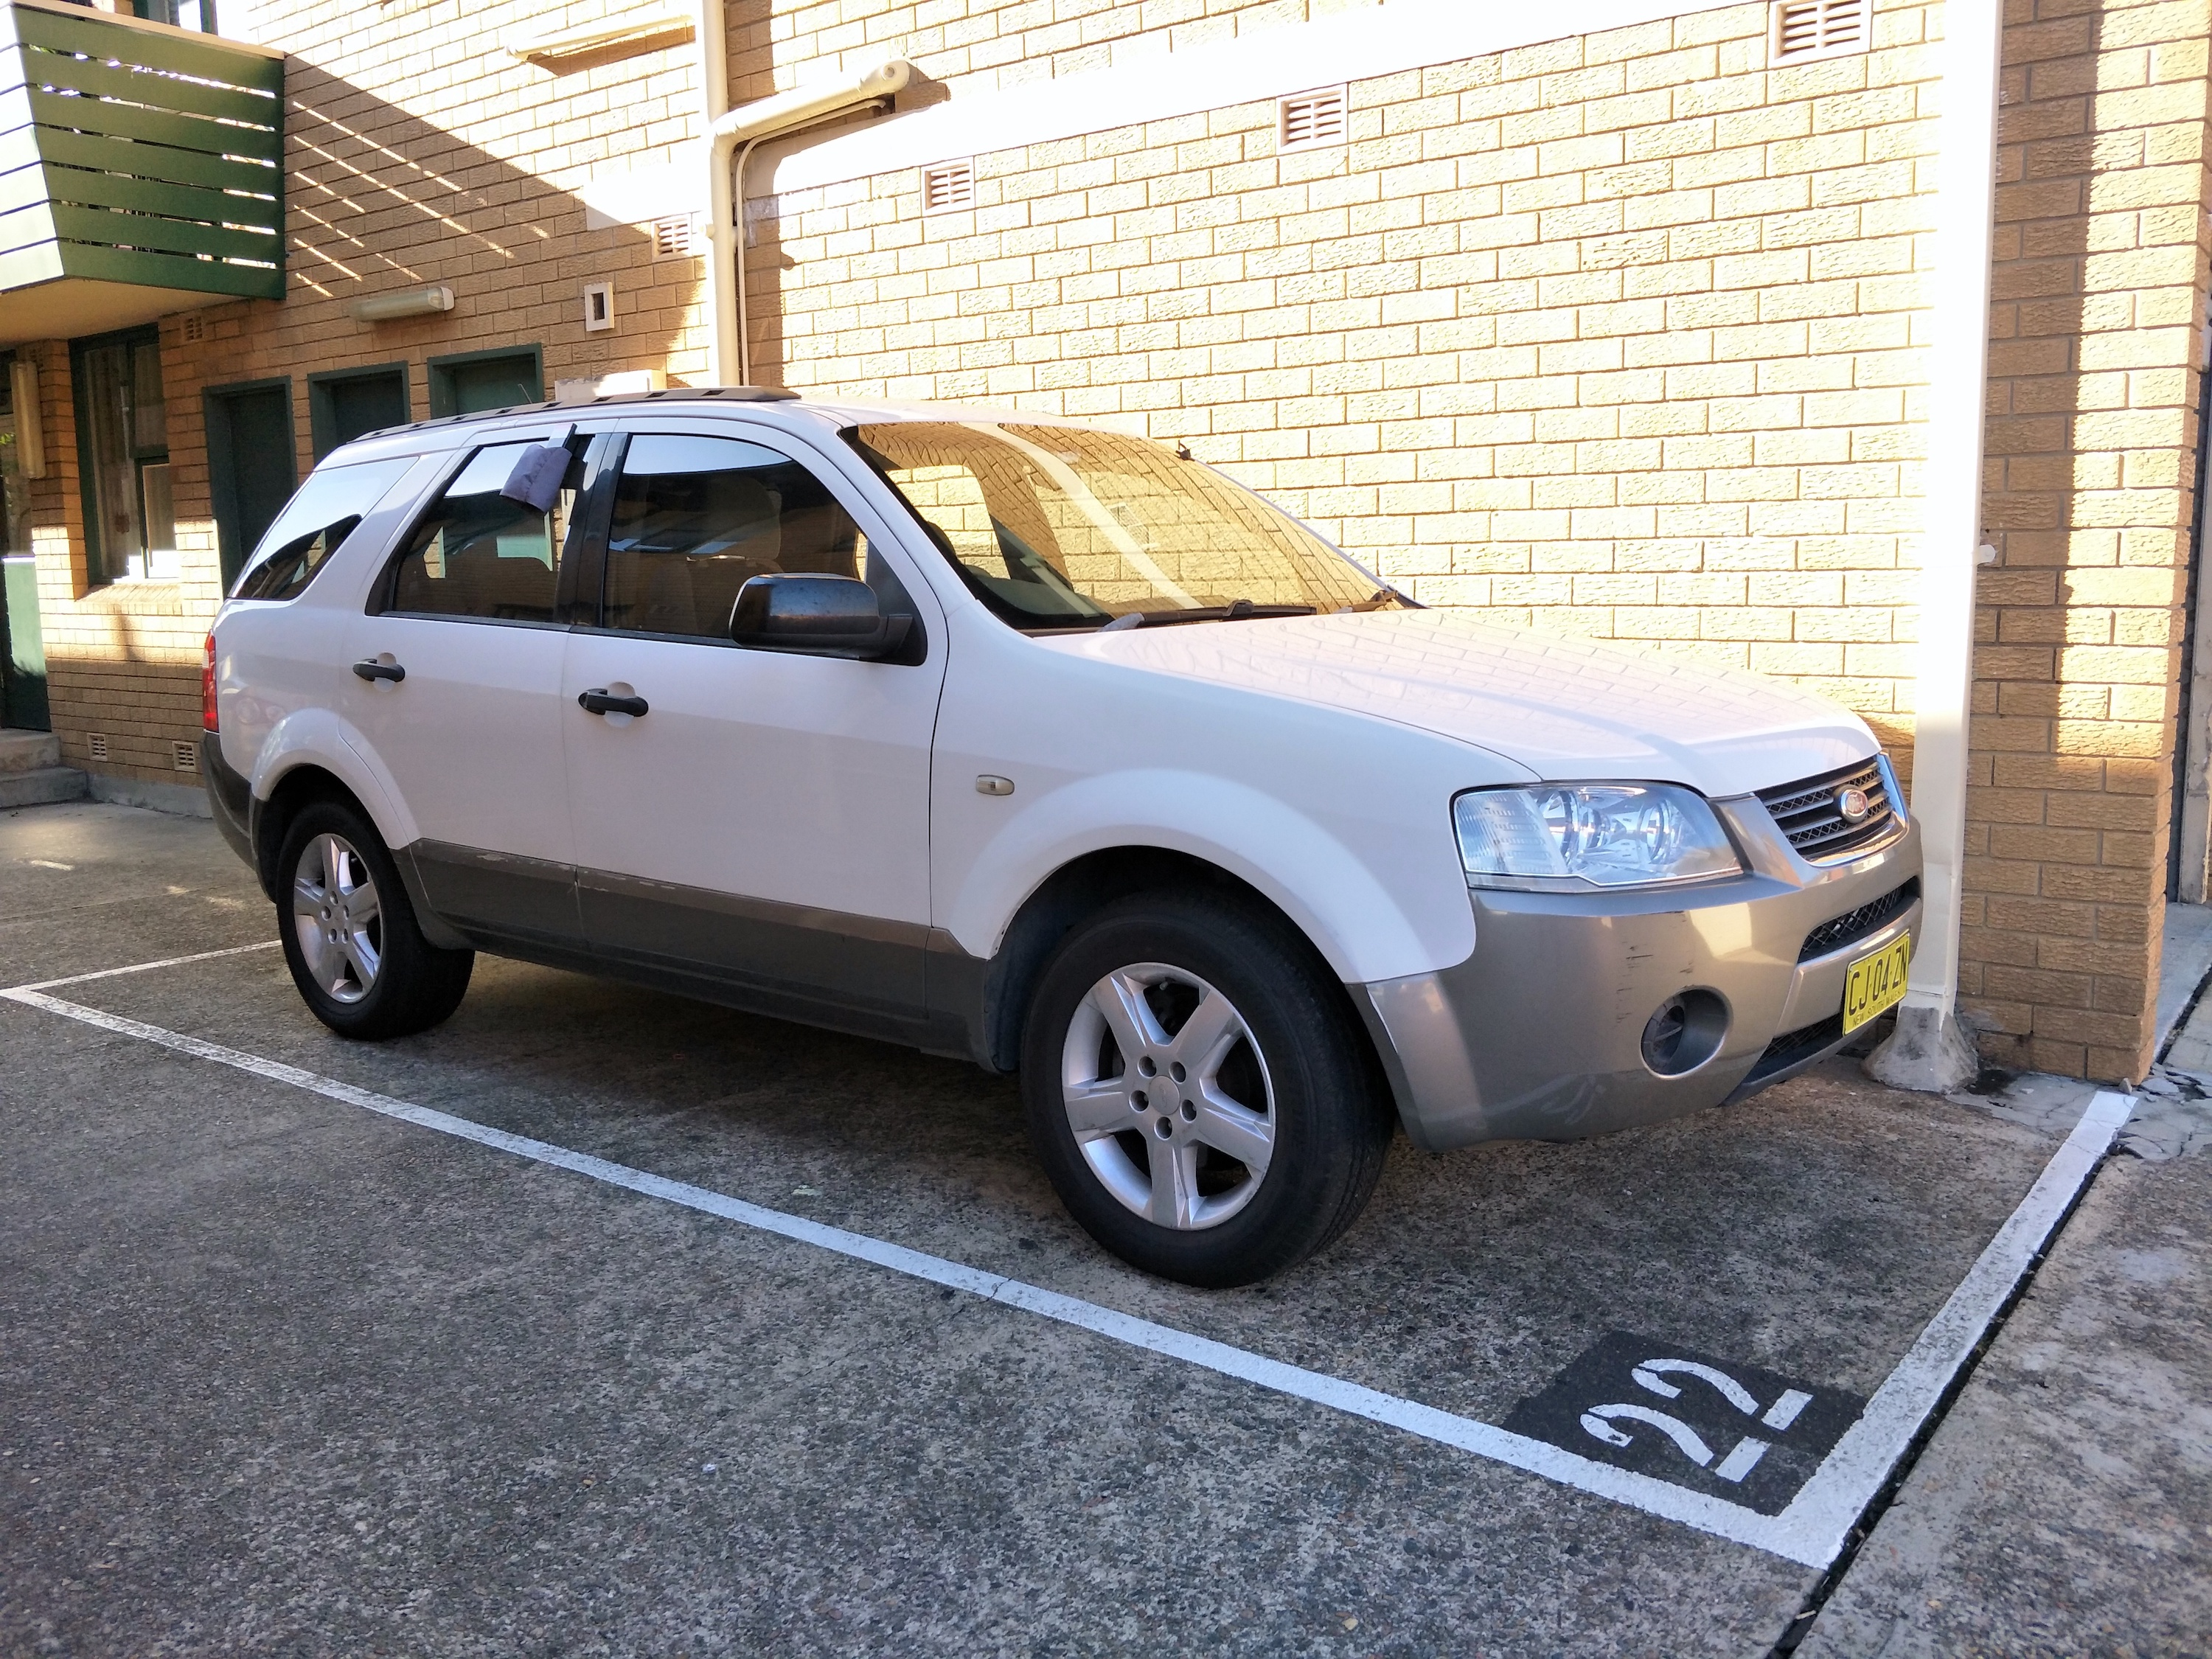 Picture of Xiating's 2008 Ford Territory 2